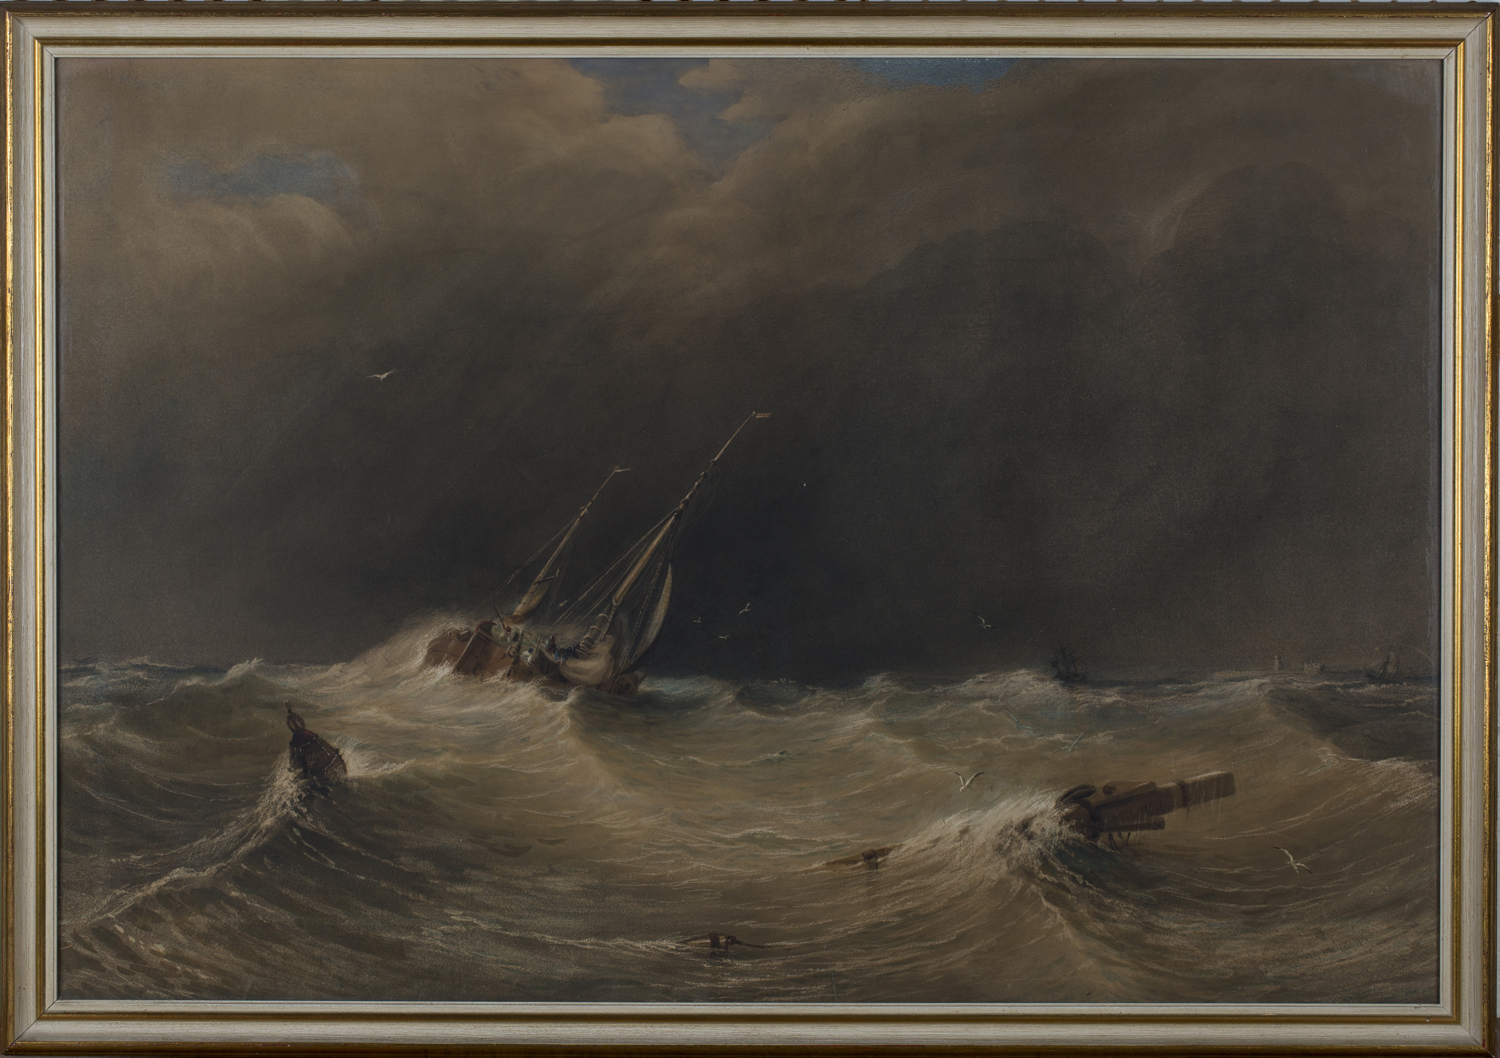 Lot 39 - Anthony Vandyck Copley Fielding - 'Squally Weather', 19th century watercolour, signed recto,